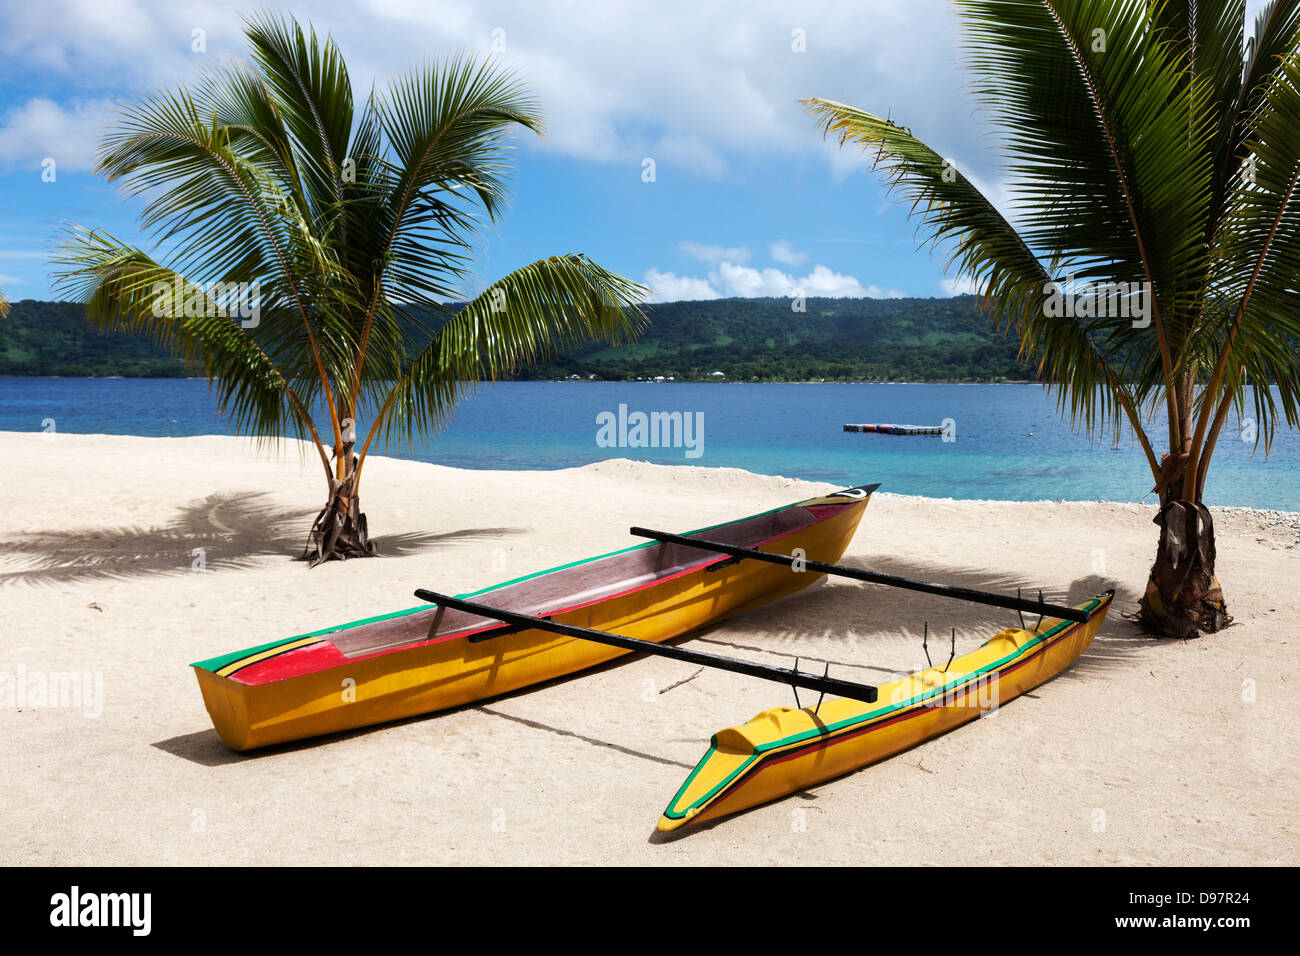 Day on Hideway Island with Efate in the background - Stock Image